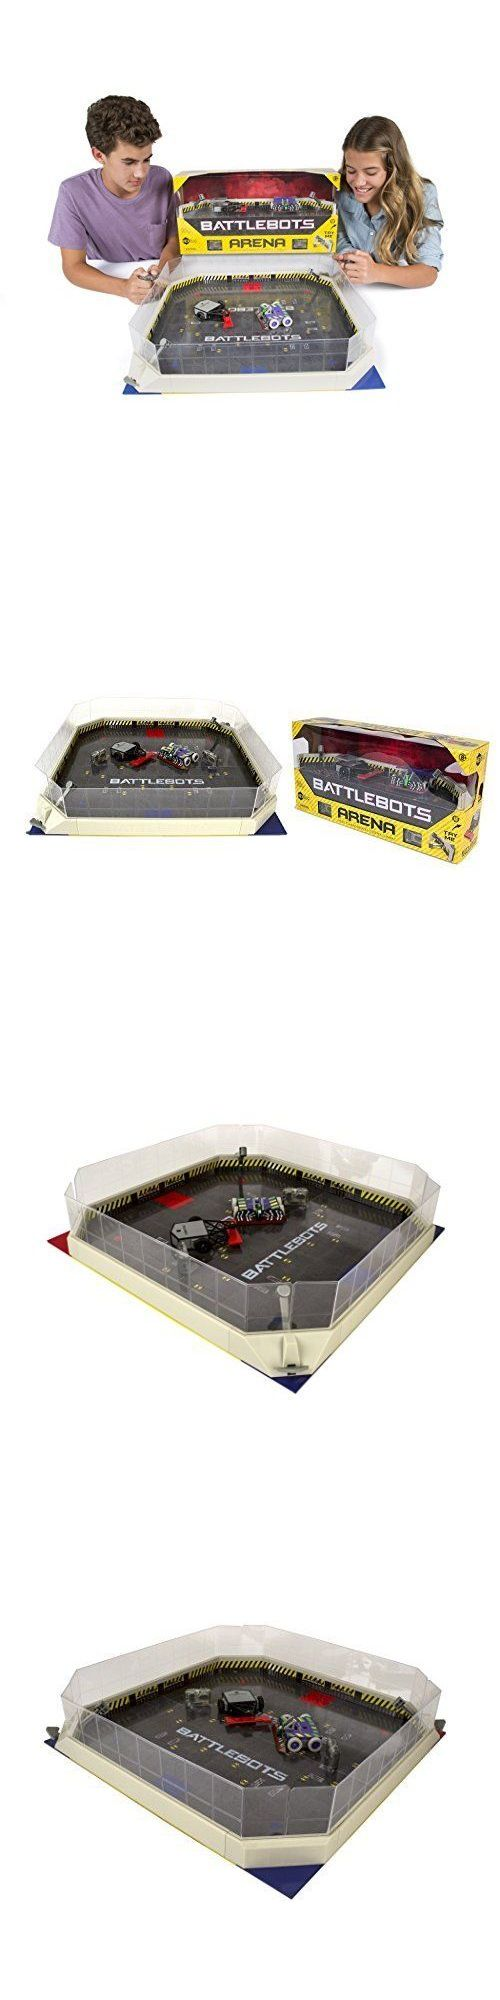 Micropets 52341: Battlebots Arena Remote Control Playset Fold Out Board Game Play Set Hexbug New -> BUY IT NOW ONLY: $92.85 on eBay!